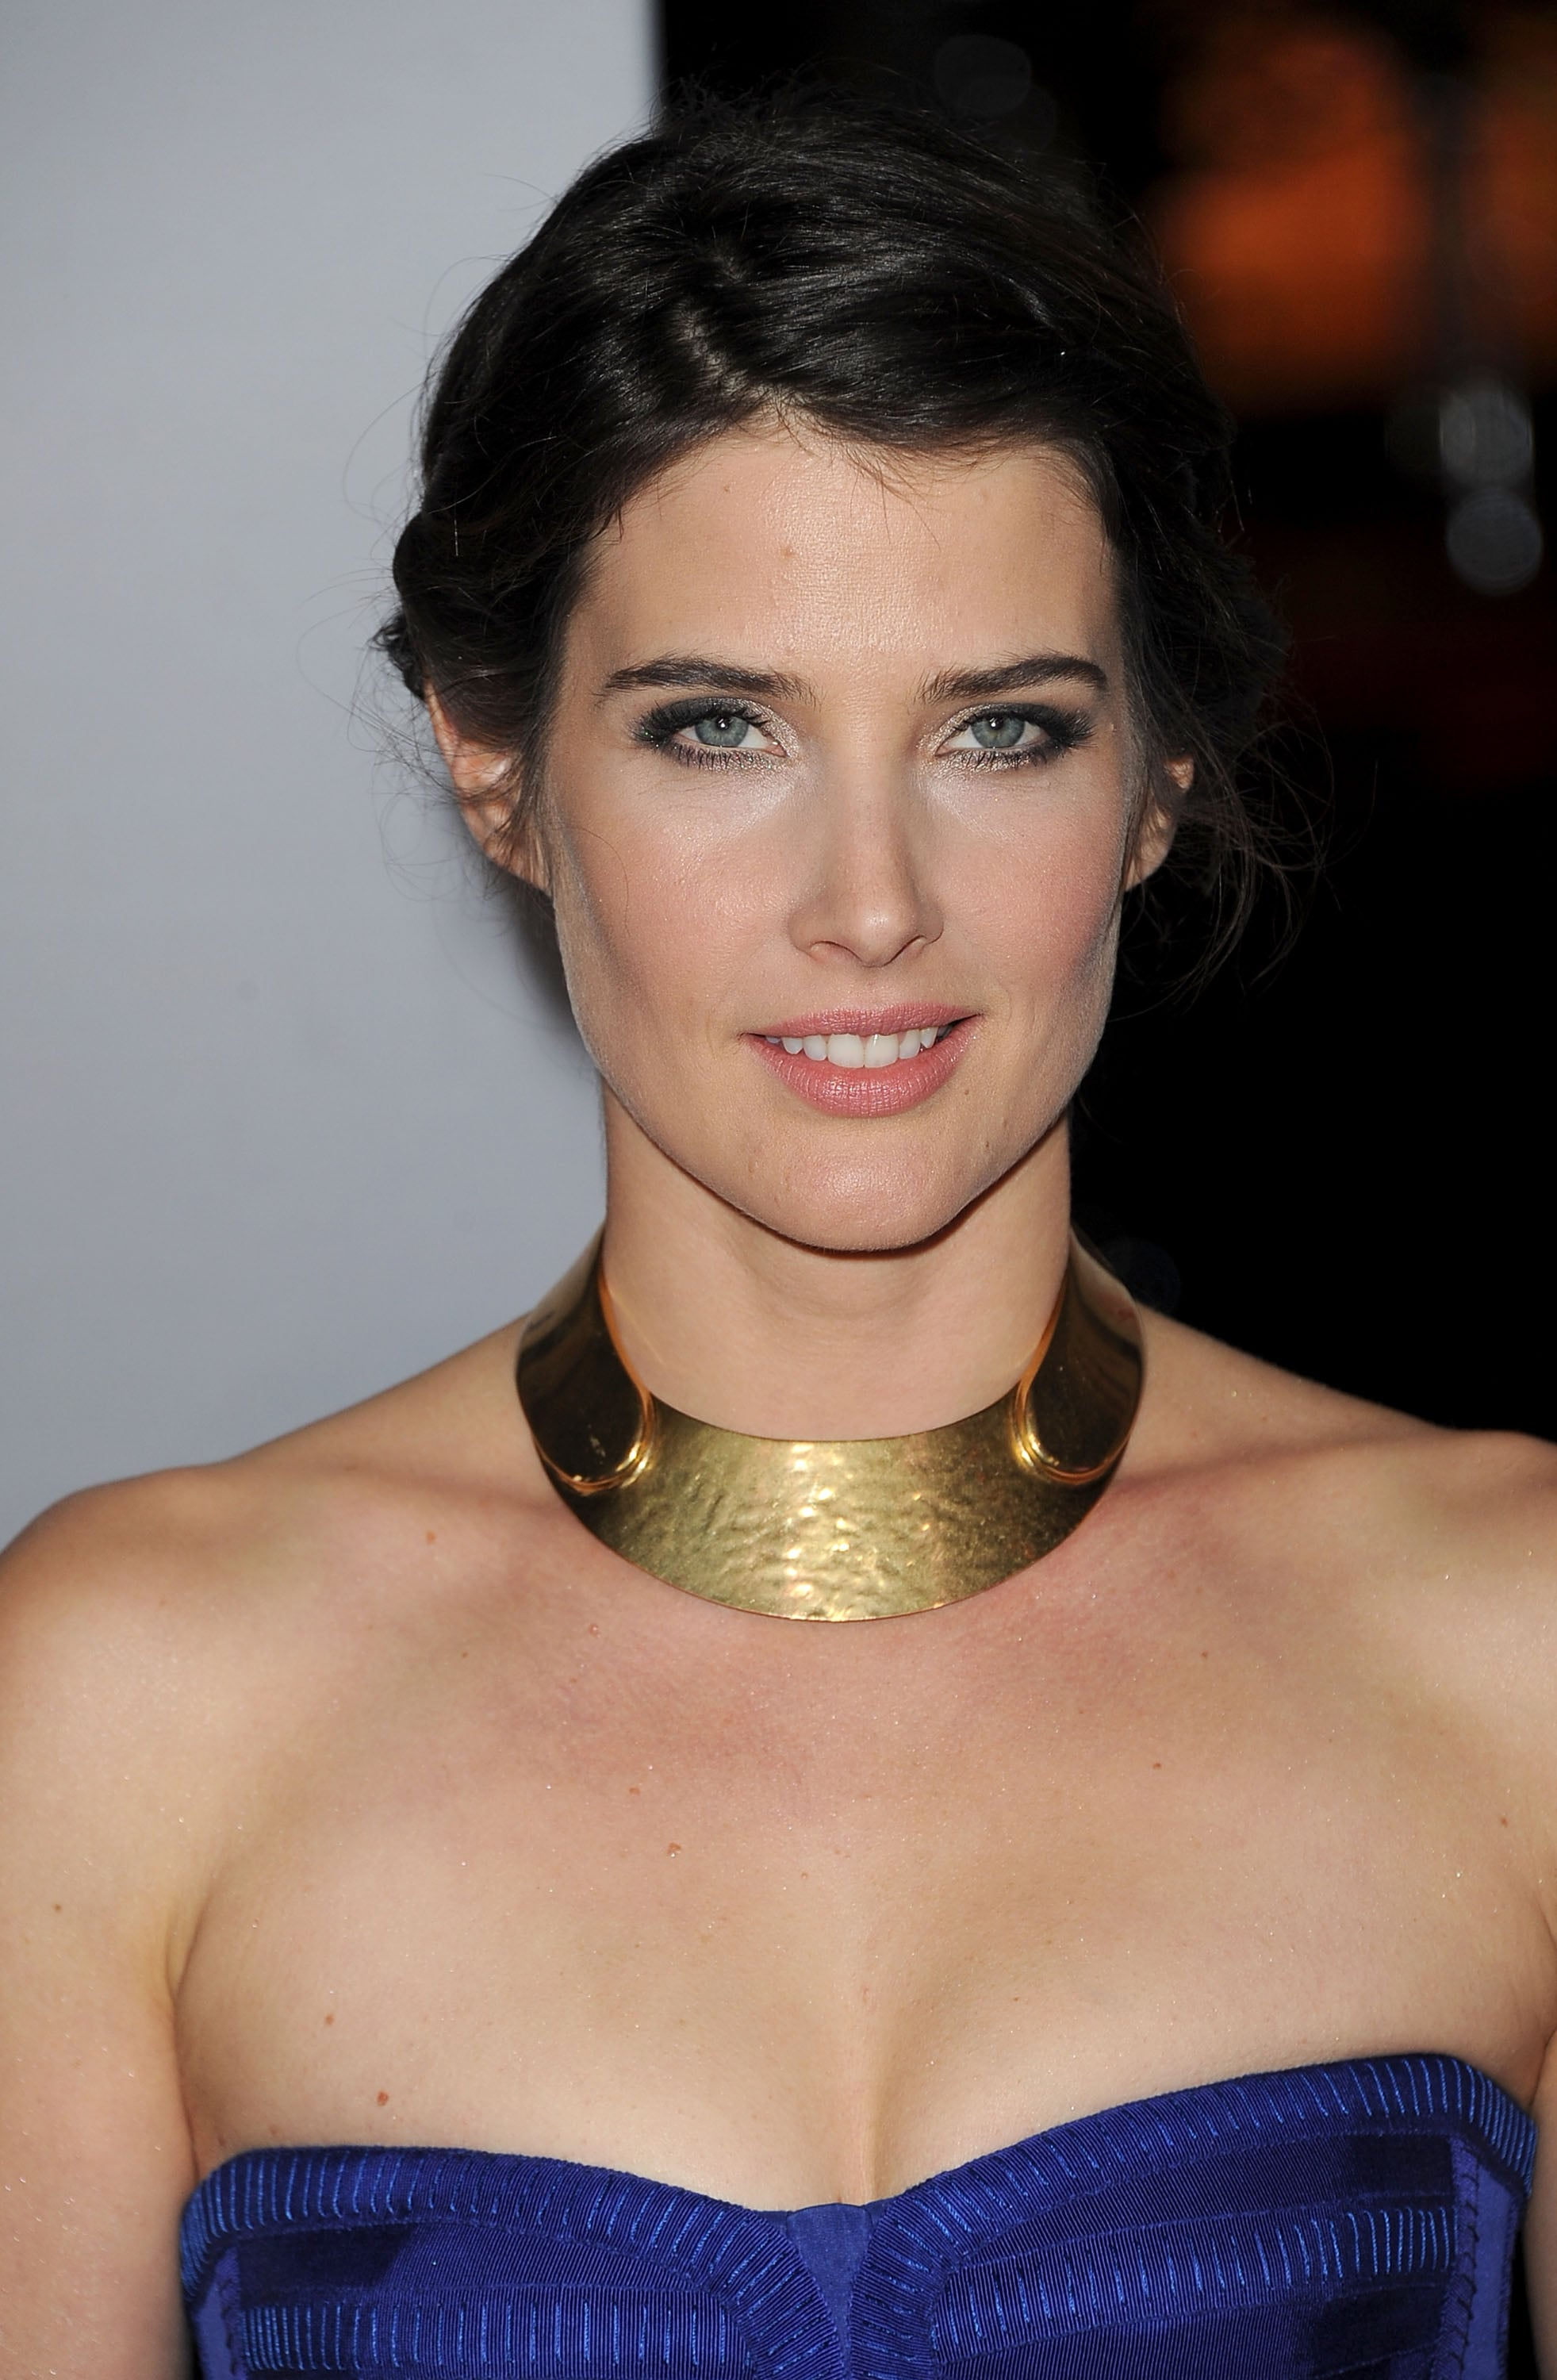 Cobie Smulders had textured hair at the People's Choice Awards.